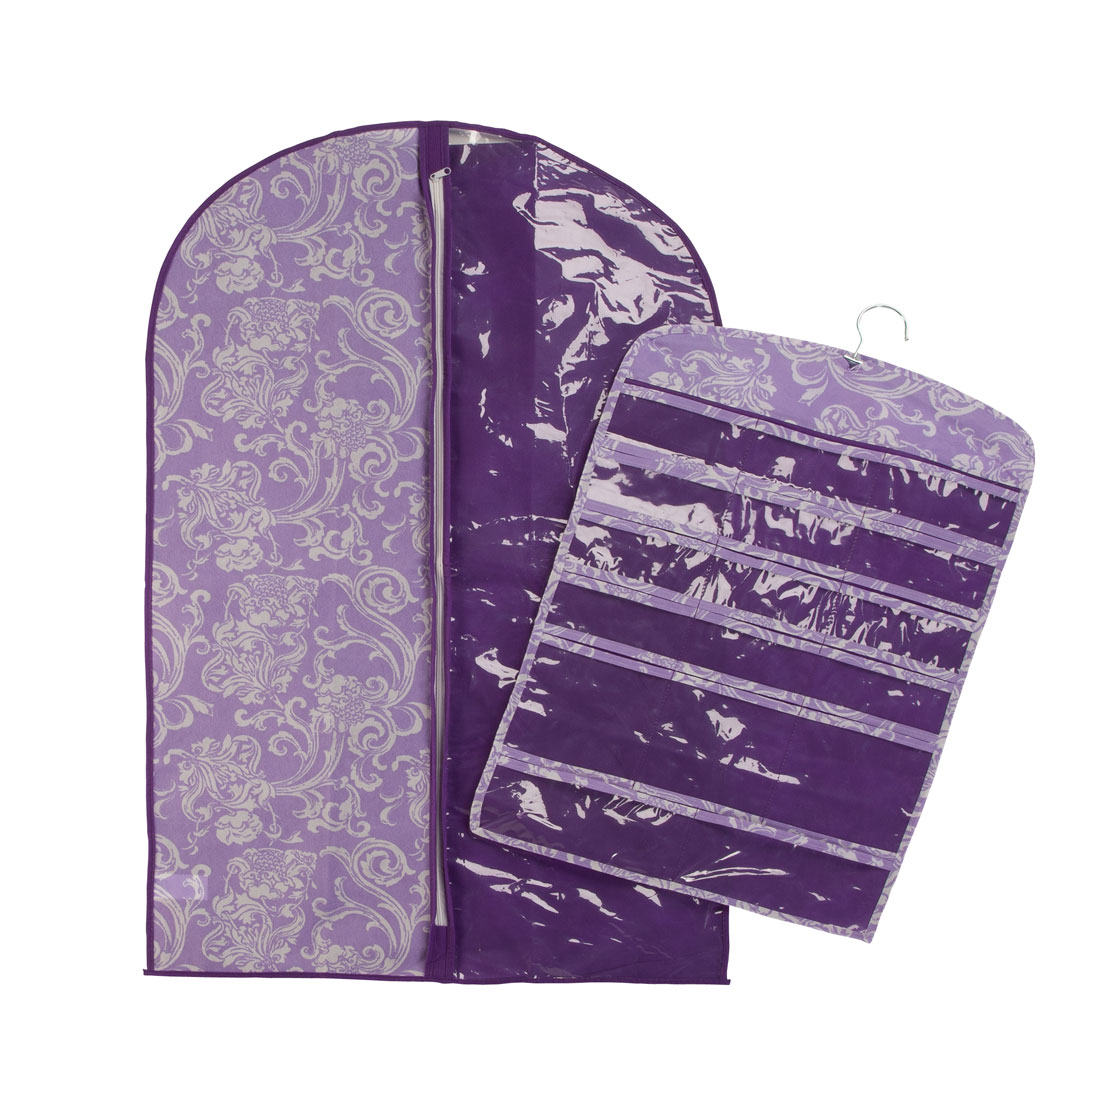 Lavendar Garment and Jewelry Organizer Set of 2 Add feminine style to your travels with this lavender garment and jewelry organizer. Zip-close women's garment bag protects clothing from being soiled on the go and keeps it dust-free in your closet. Versatile jewelry holder features 17 pockets perfect for all kinds of accessories -- simply roll up for travel, open and hang by its metal hook at your destination. Two-piece set is a smart value! Garment bag measures 23  W x 39  H; jewelry organizer is 17 1/2  W x 26  H when flat. Wipe-clean polypropylene.